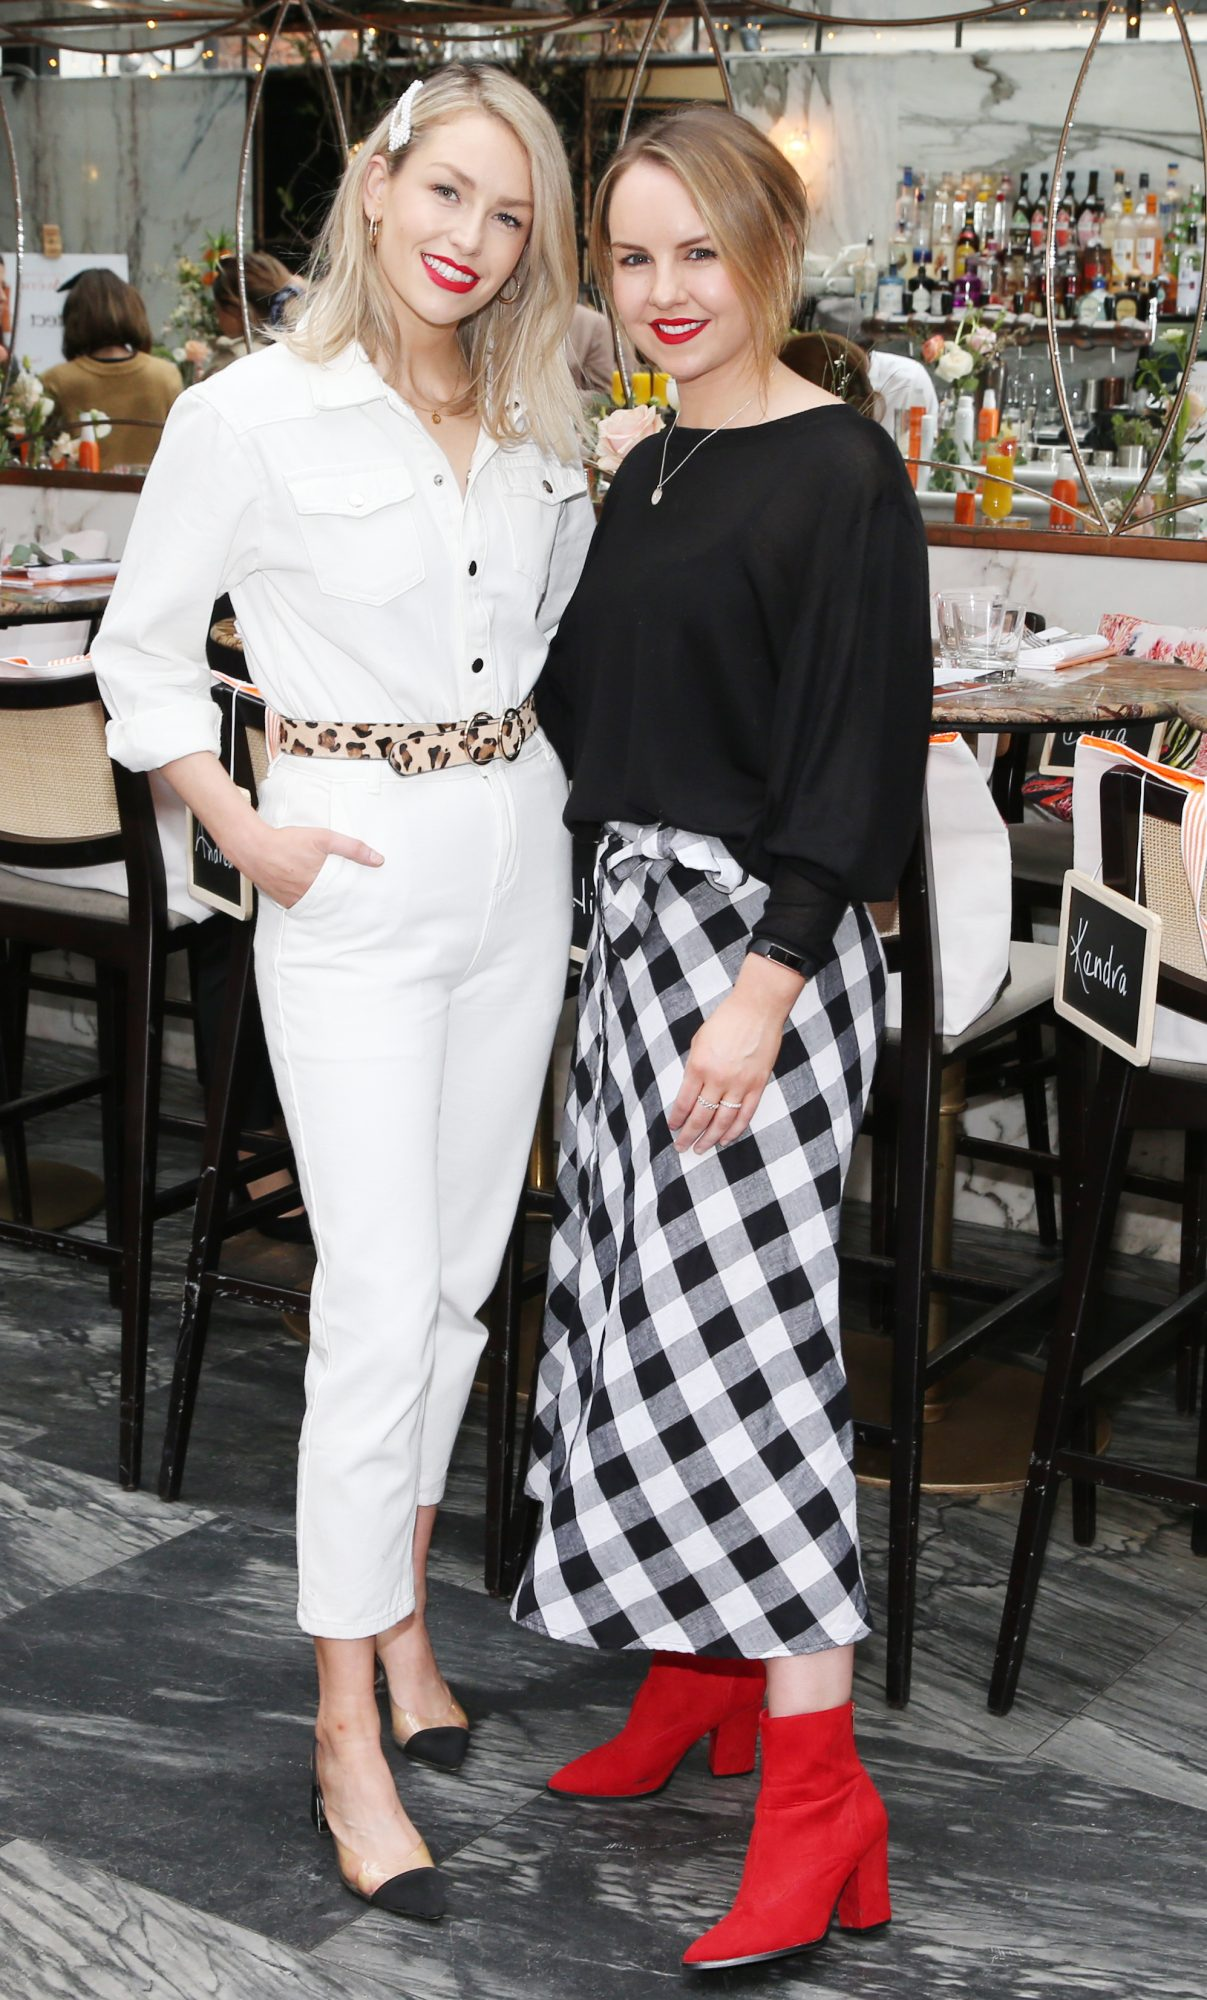 Pictured is Lia Stokes and Katie Allen at the launch of the new Avène Expert Suncare Range in The Grayson Dublin. The new range of suncare from the French brand is suitable for all skin types and includes a Sports Sun Cream, a City Shield BB Style High Protection Face Cream, two new SPF Body Sprays and a new Very High Protection Children's SPF. For more information visit www.avene.ie. Photo: Leon Farrell/Photocall Ireland.